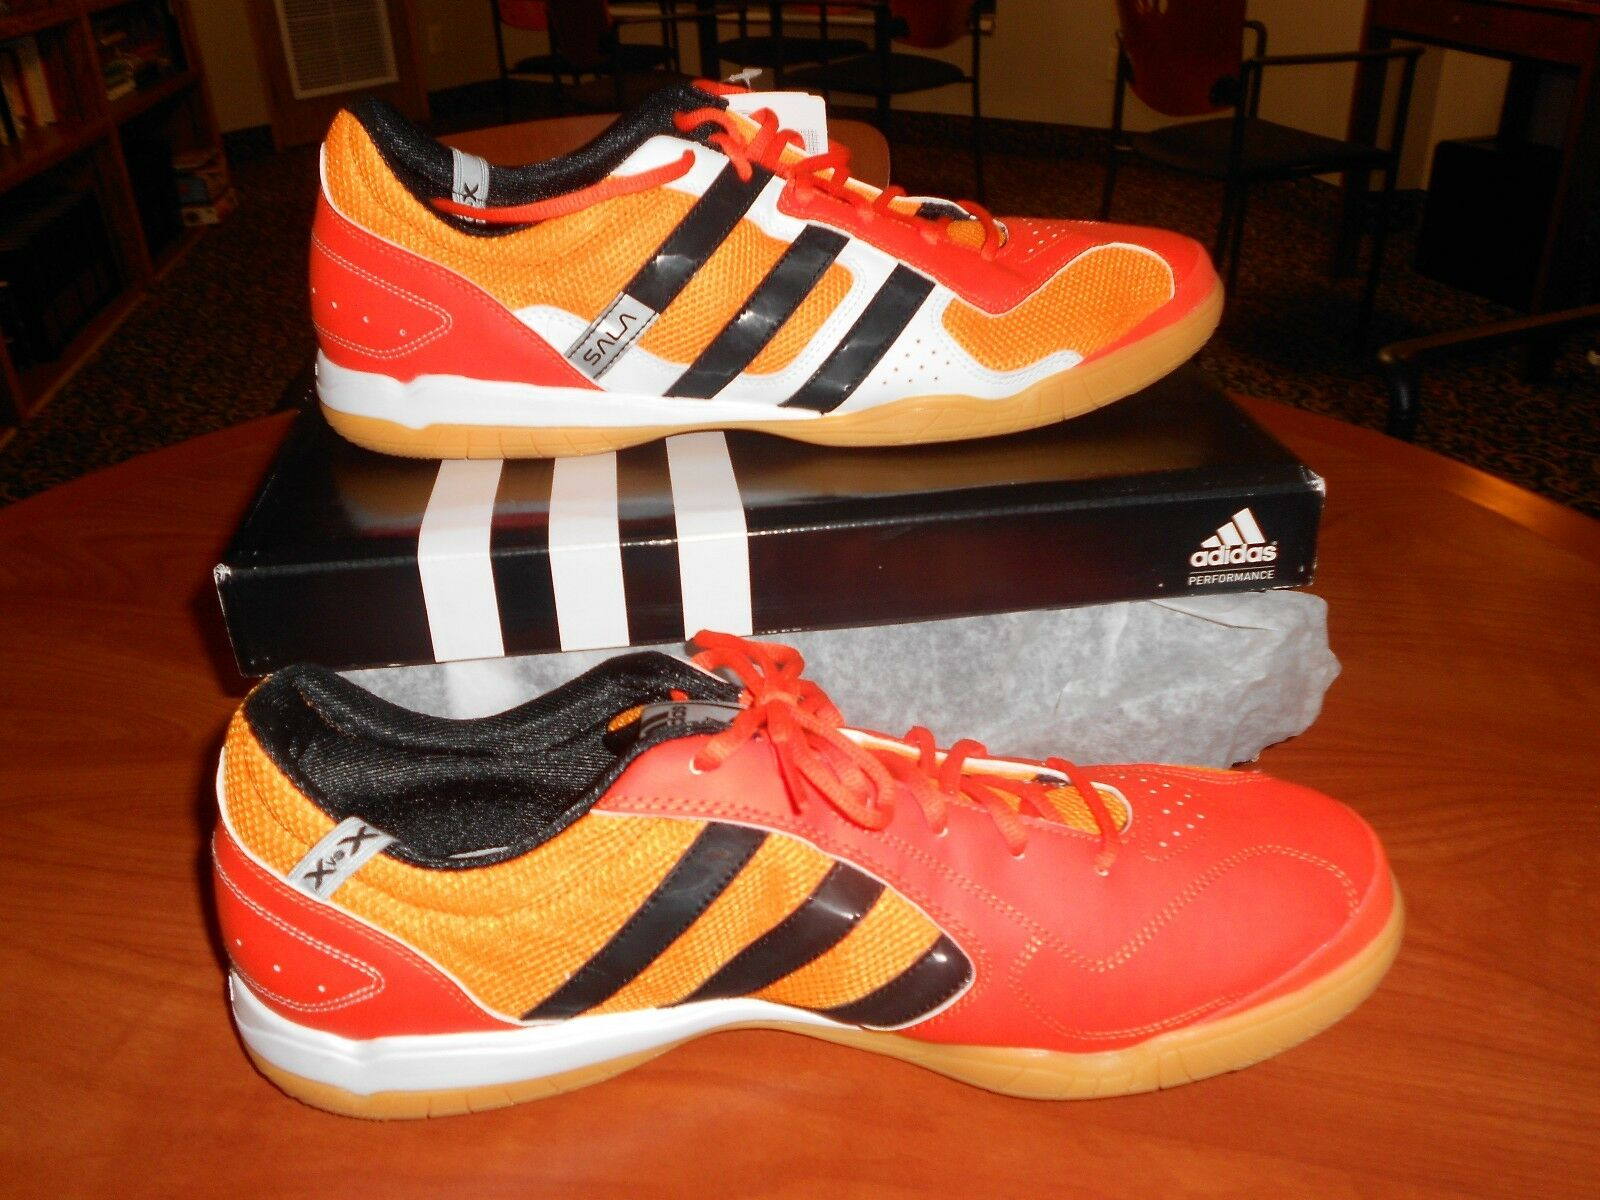 Adidas Super Sala IX Soccer Indoor Soccer shoe US 13 Men's Size 13 US eb82ef